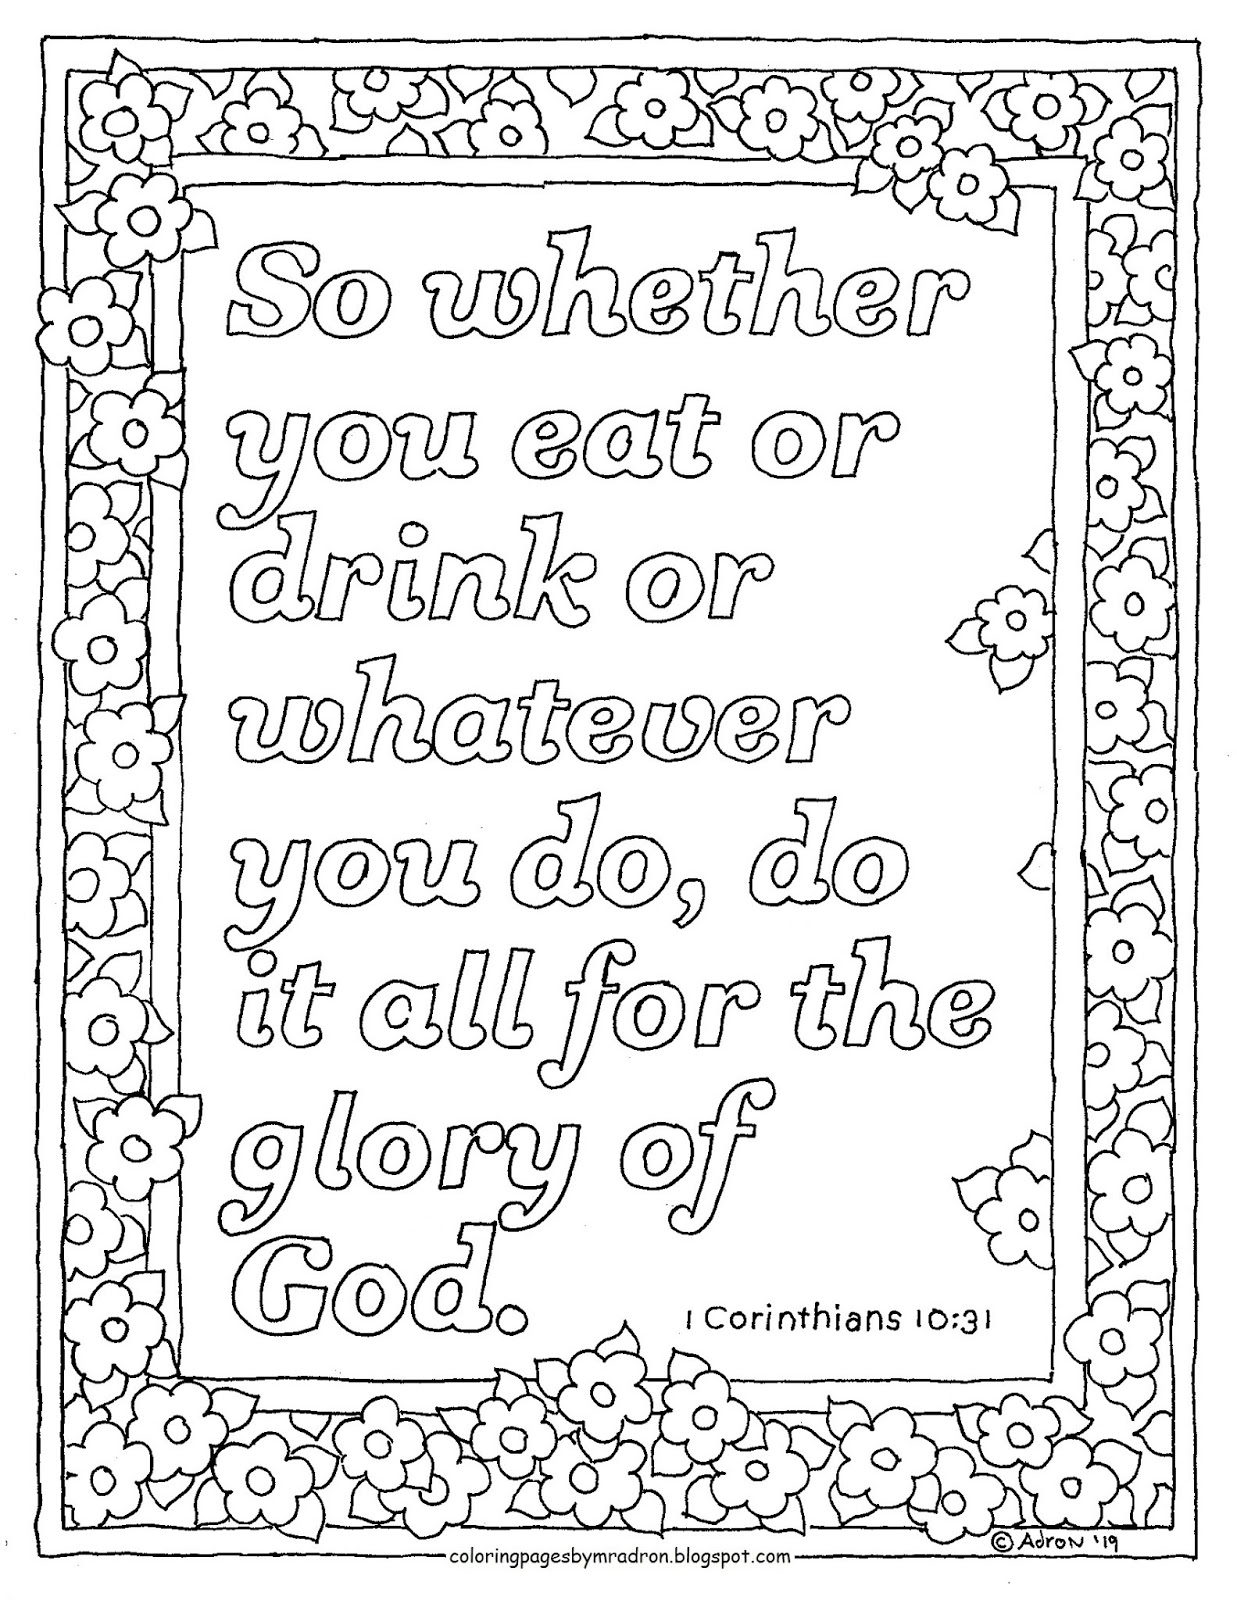 printable 1 corinthians 12 coloring pages coloring pages for kids by mr adron 1 corinthians 1613 pages coloring 12 1 corinthians printable